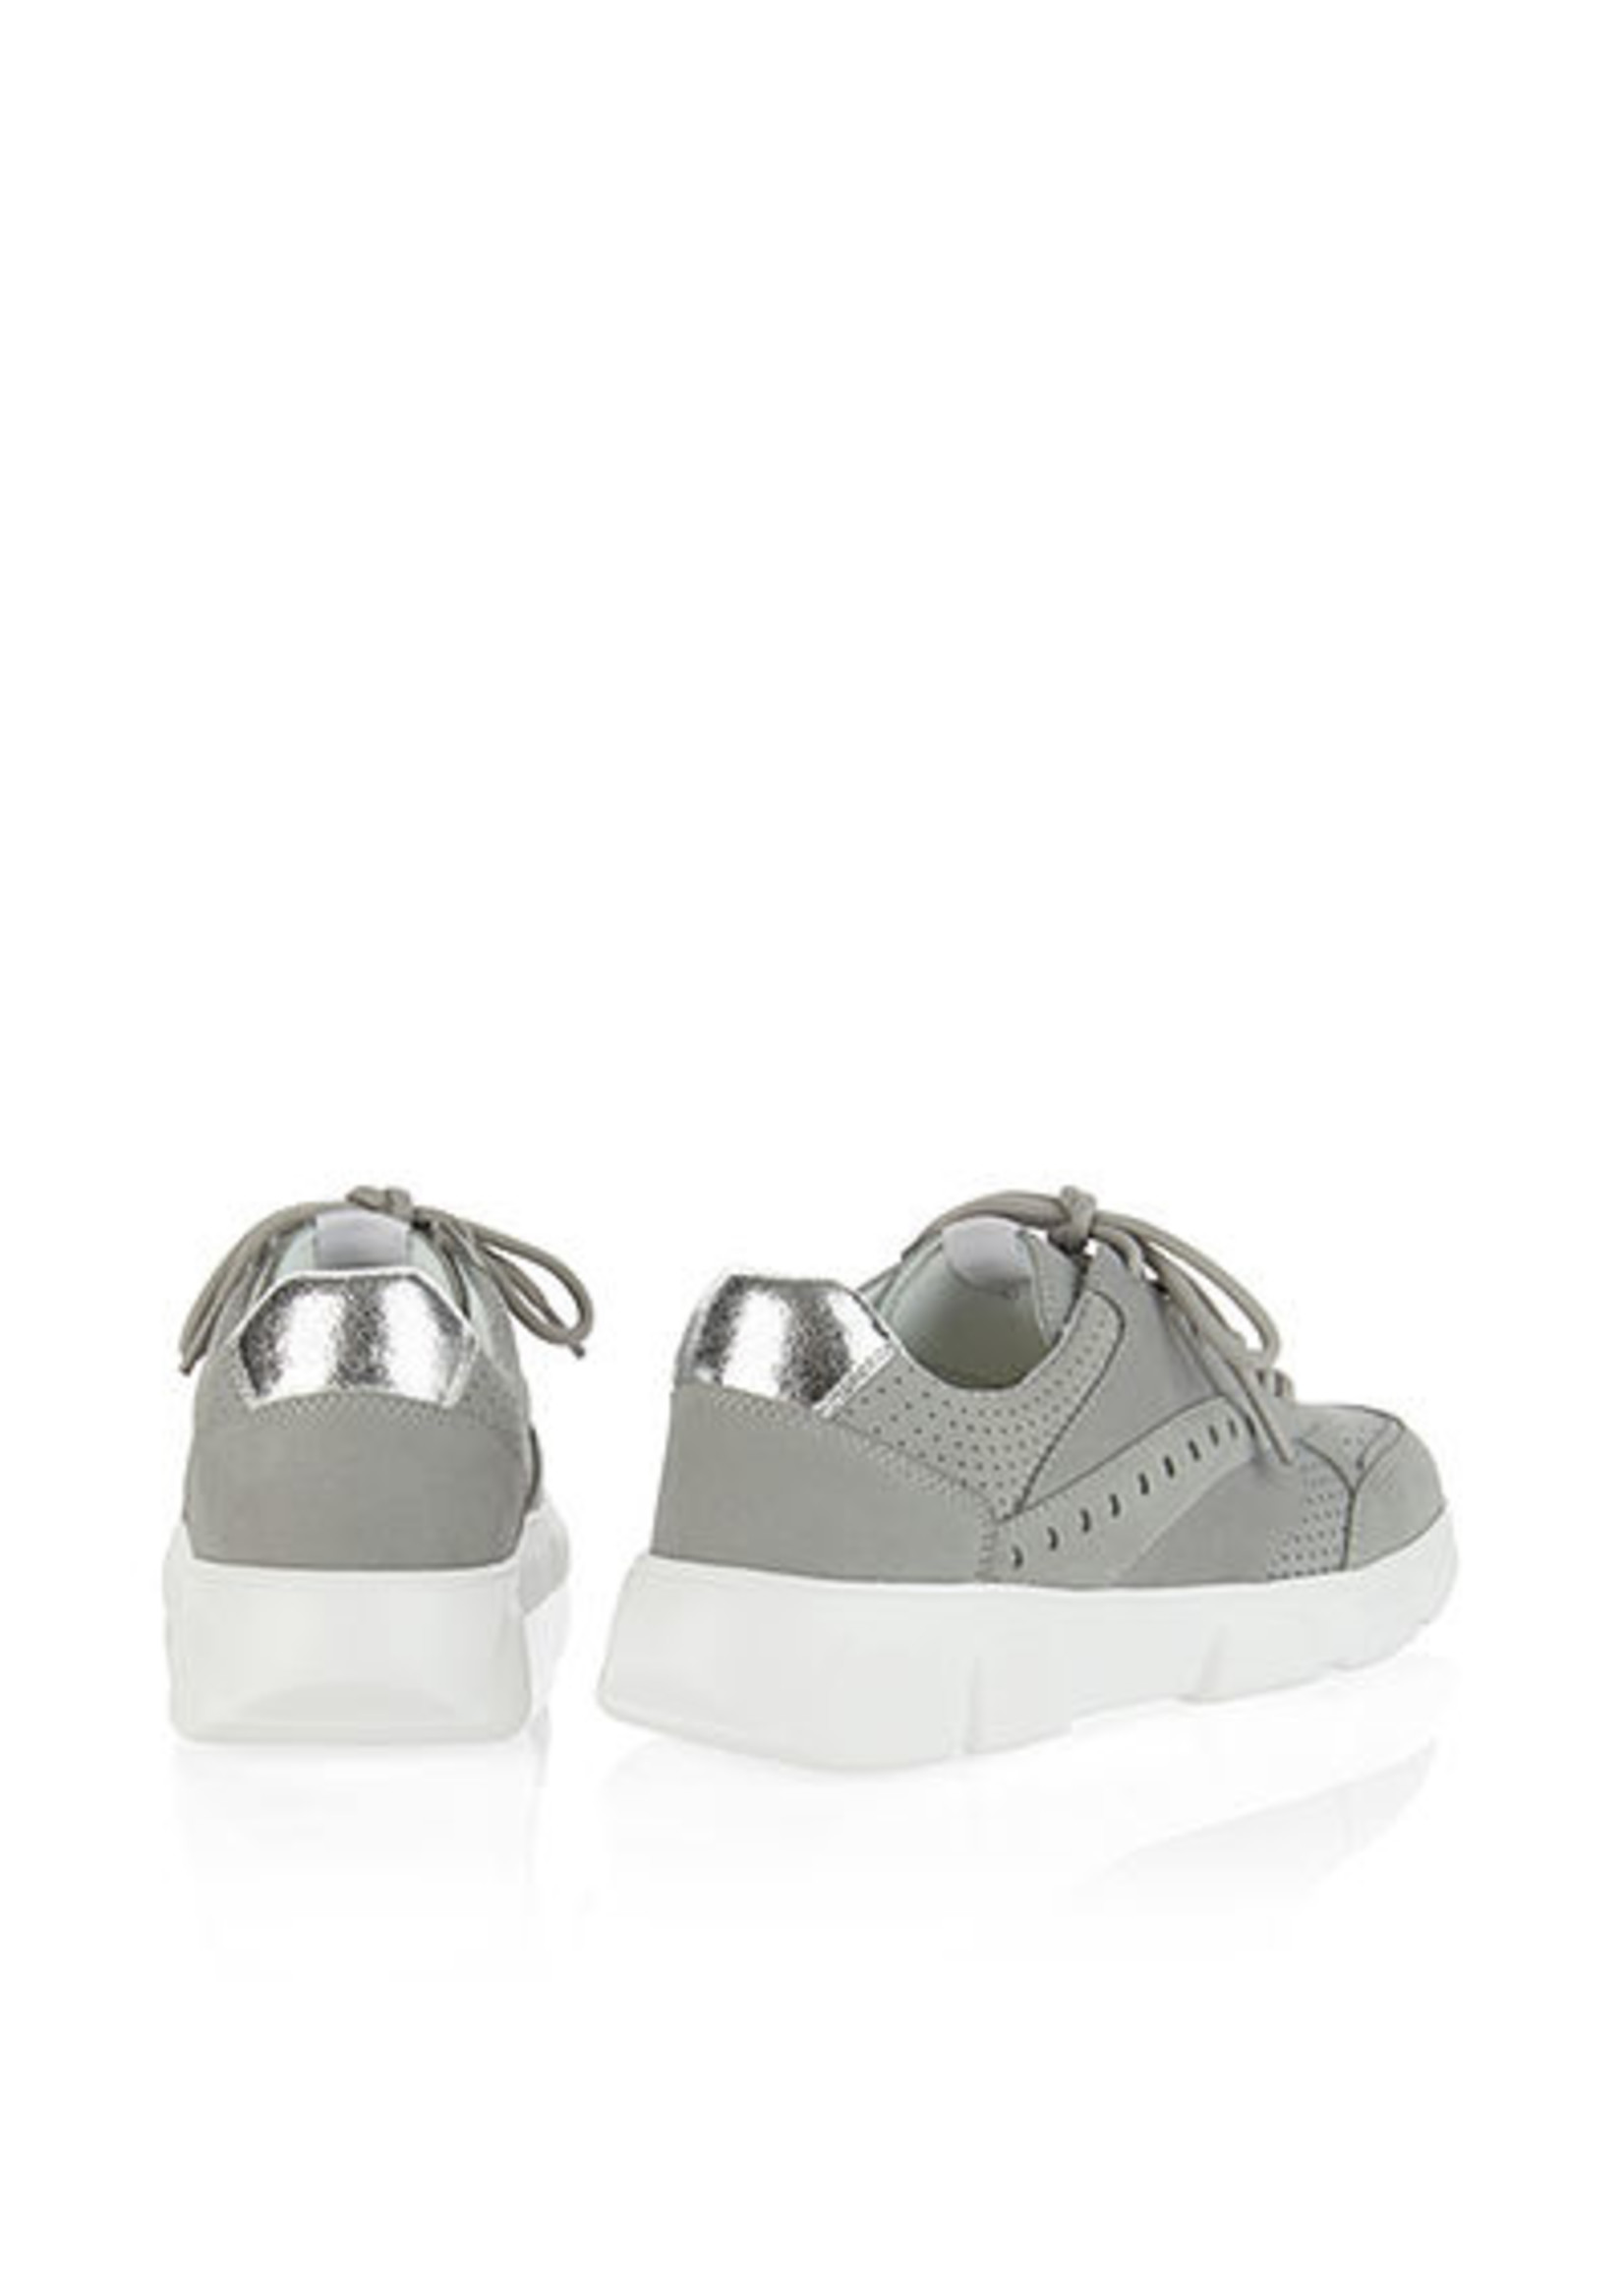 Marccain Bags & Shoes Sneaker RB SH.02 L20 silver grey